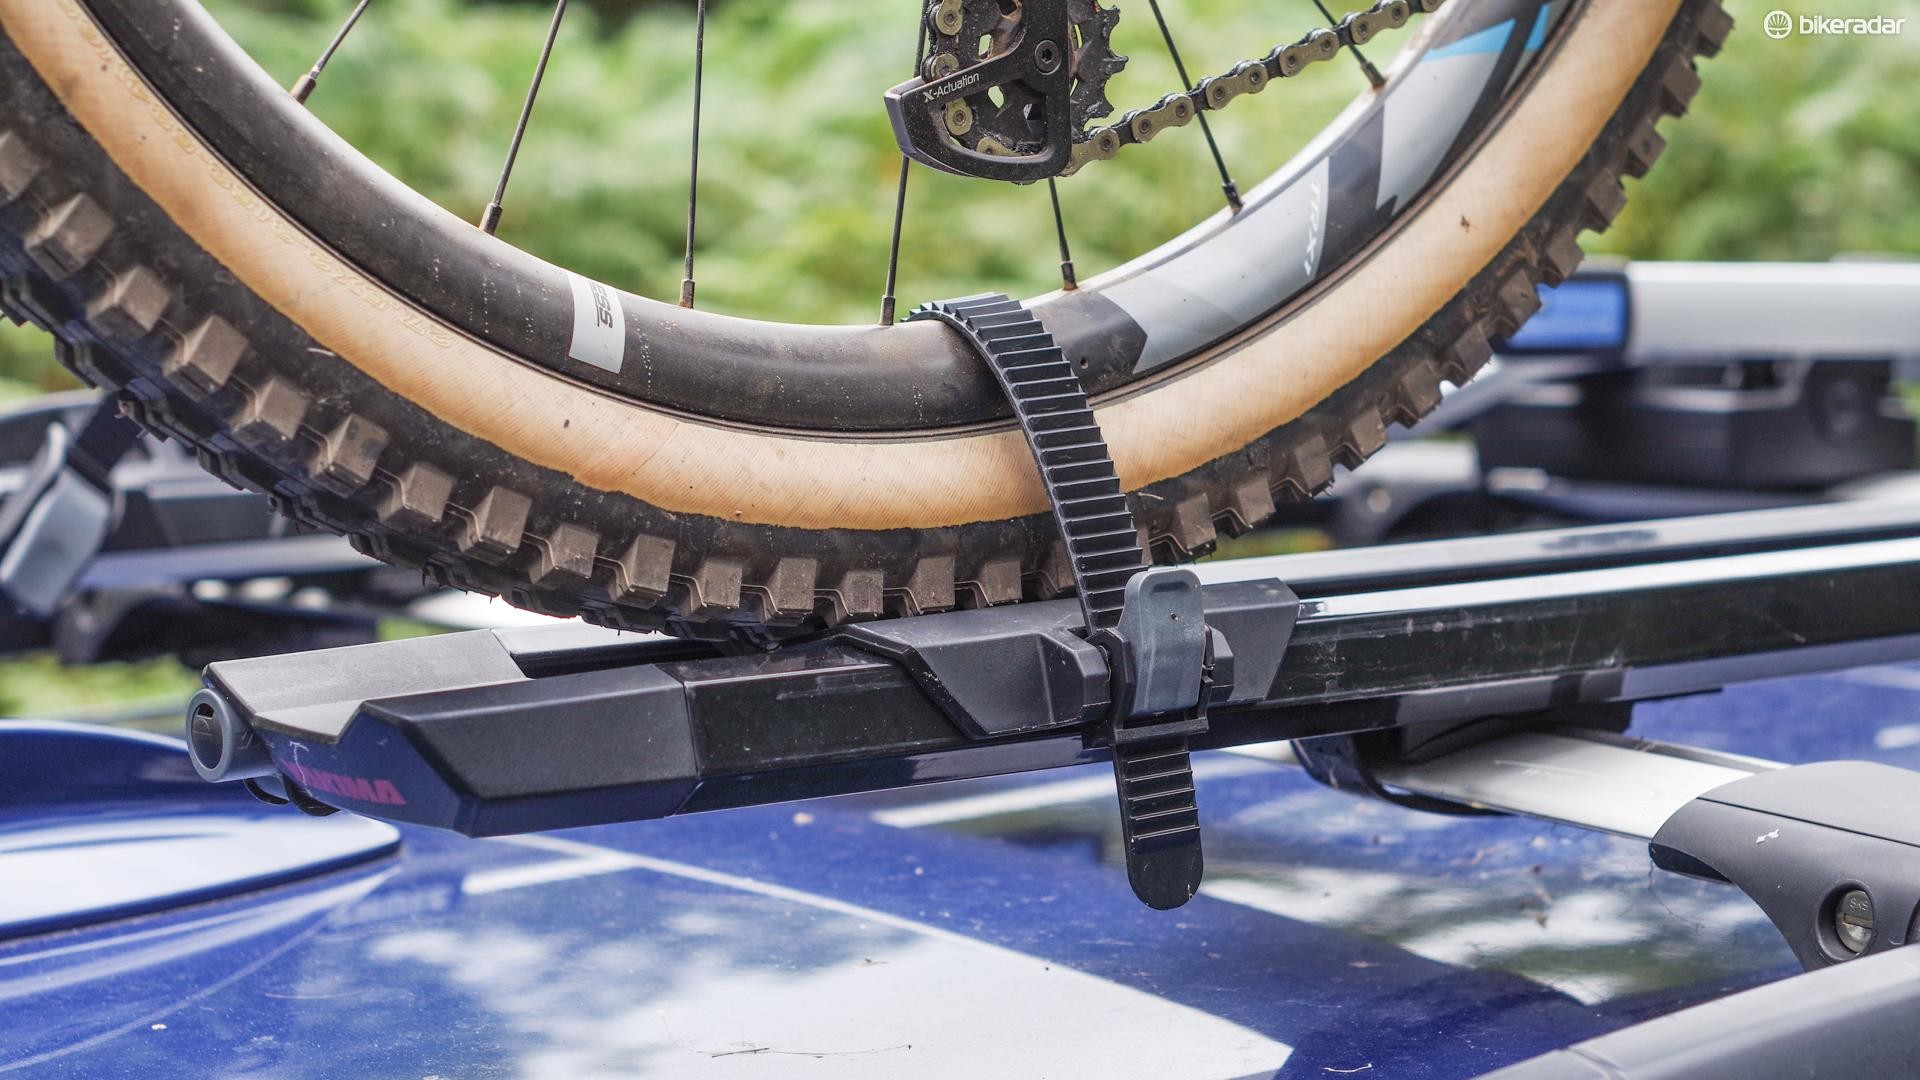 On this installation, the standard length rear wheel strap works great for MTBs and deep section wheels, but is too long for low profile wheels